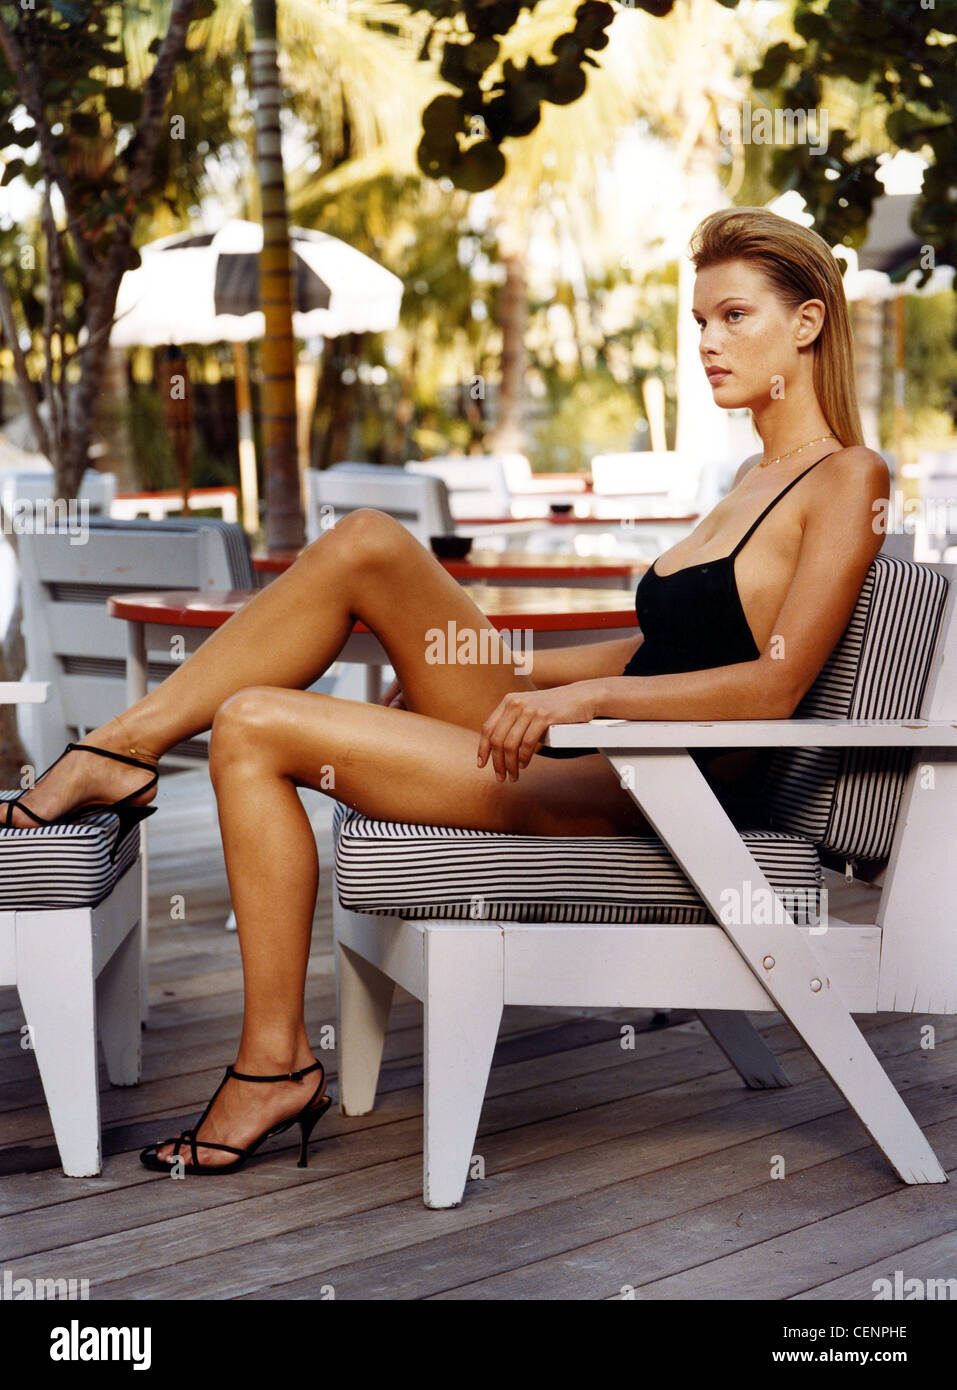 Female dark blonde straight hair worn tucked behind her ears wearing a plain black swimsuit thin straps and strappy - Stock Image